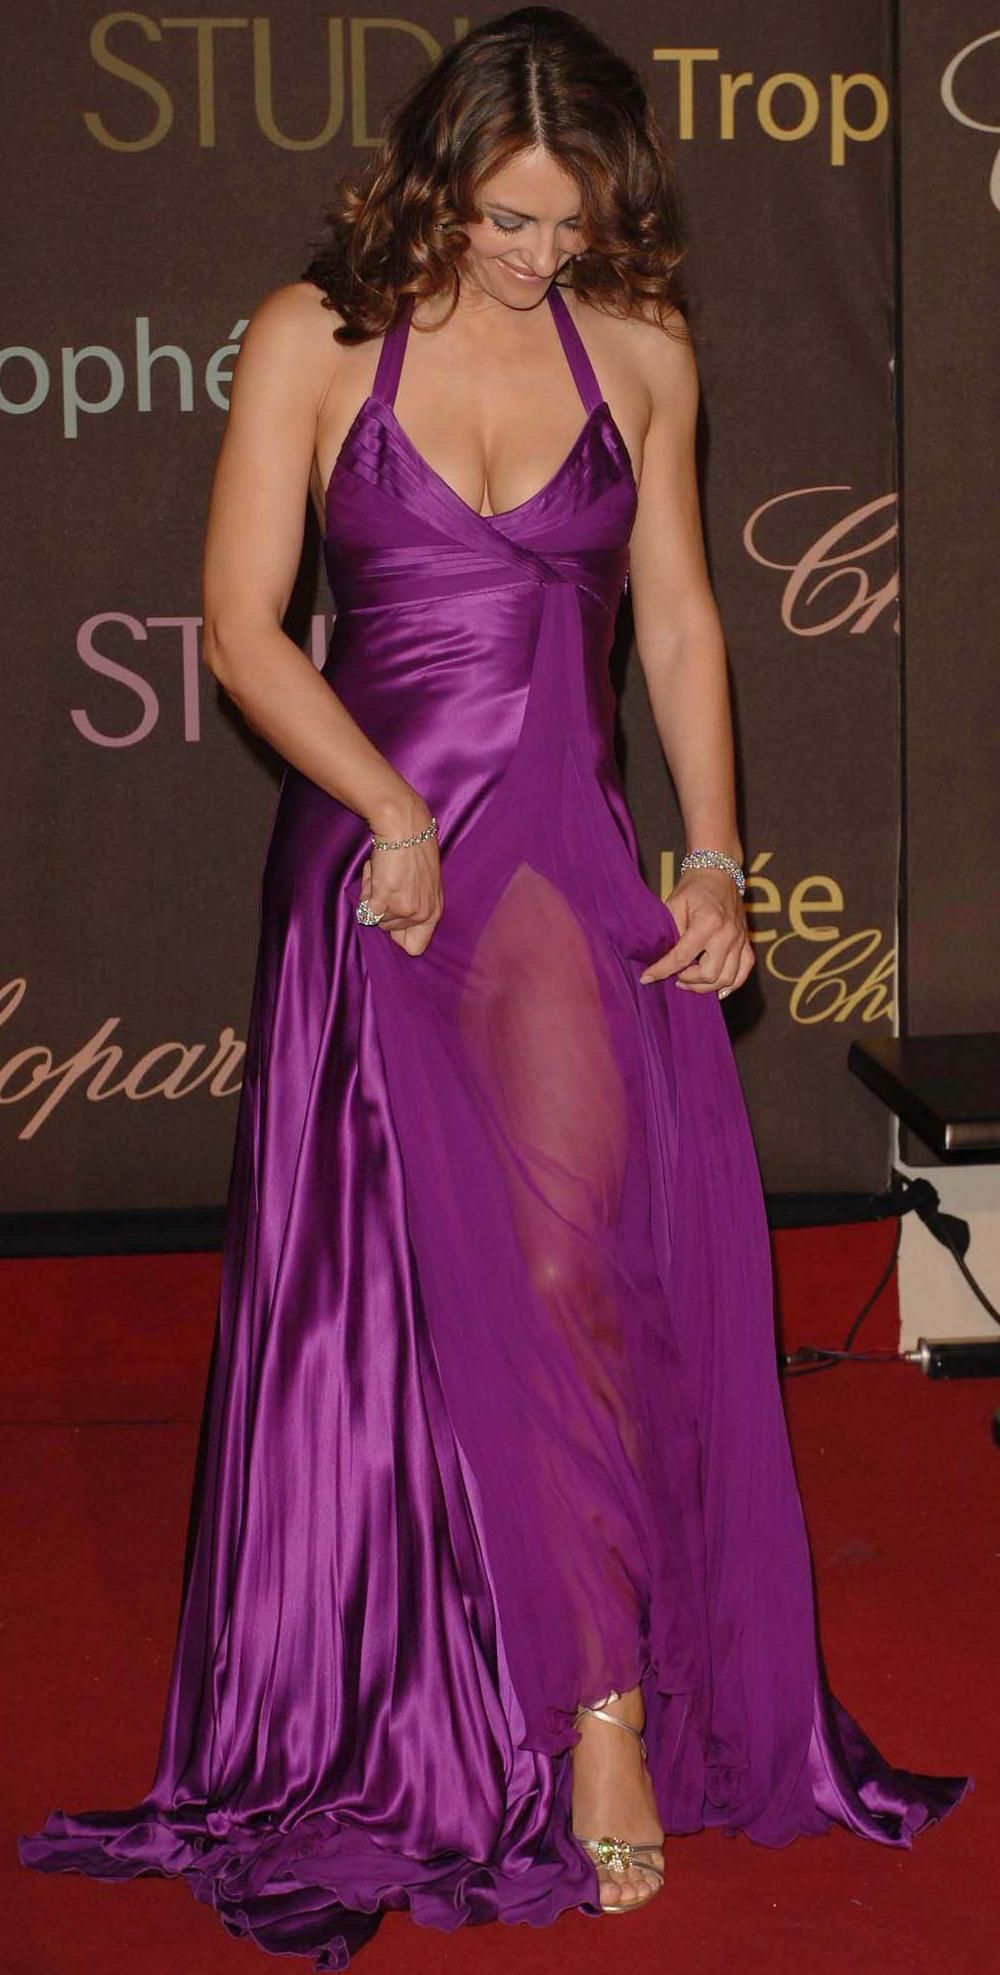 Rather Elizabeth hurley see through dress something is